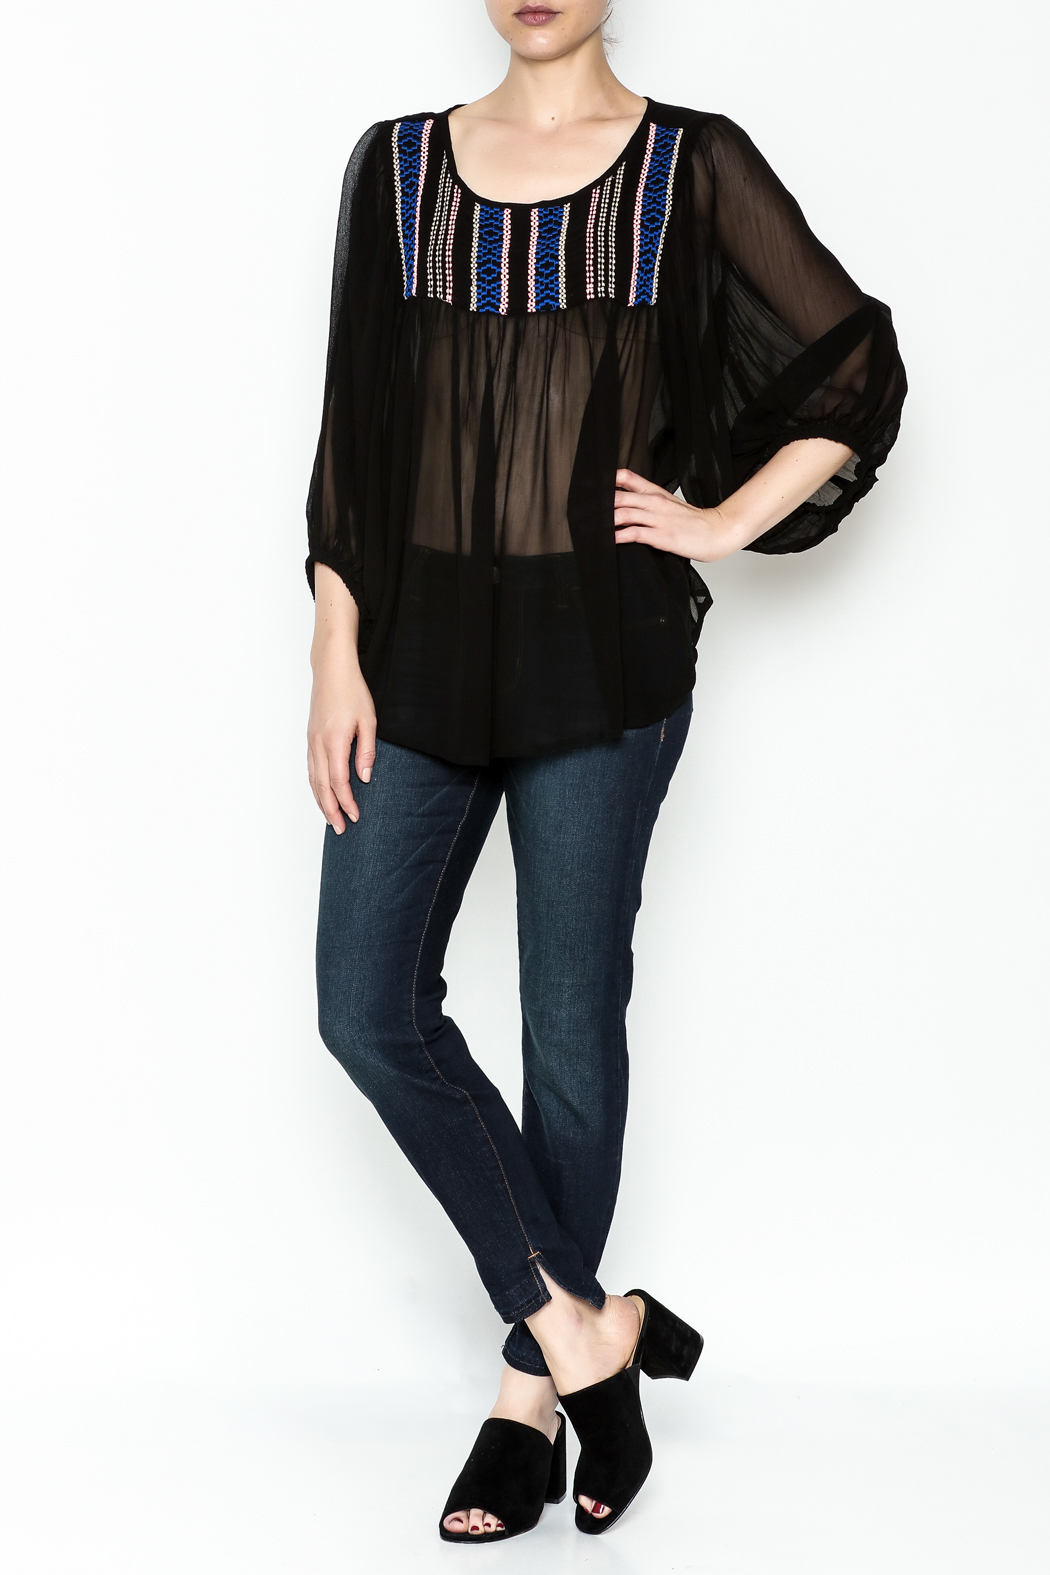 Ivy Jane Black Peasant Top - Side Cropped Image